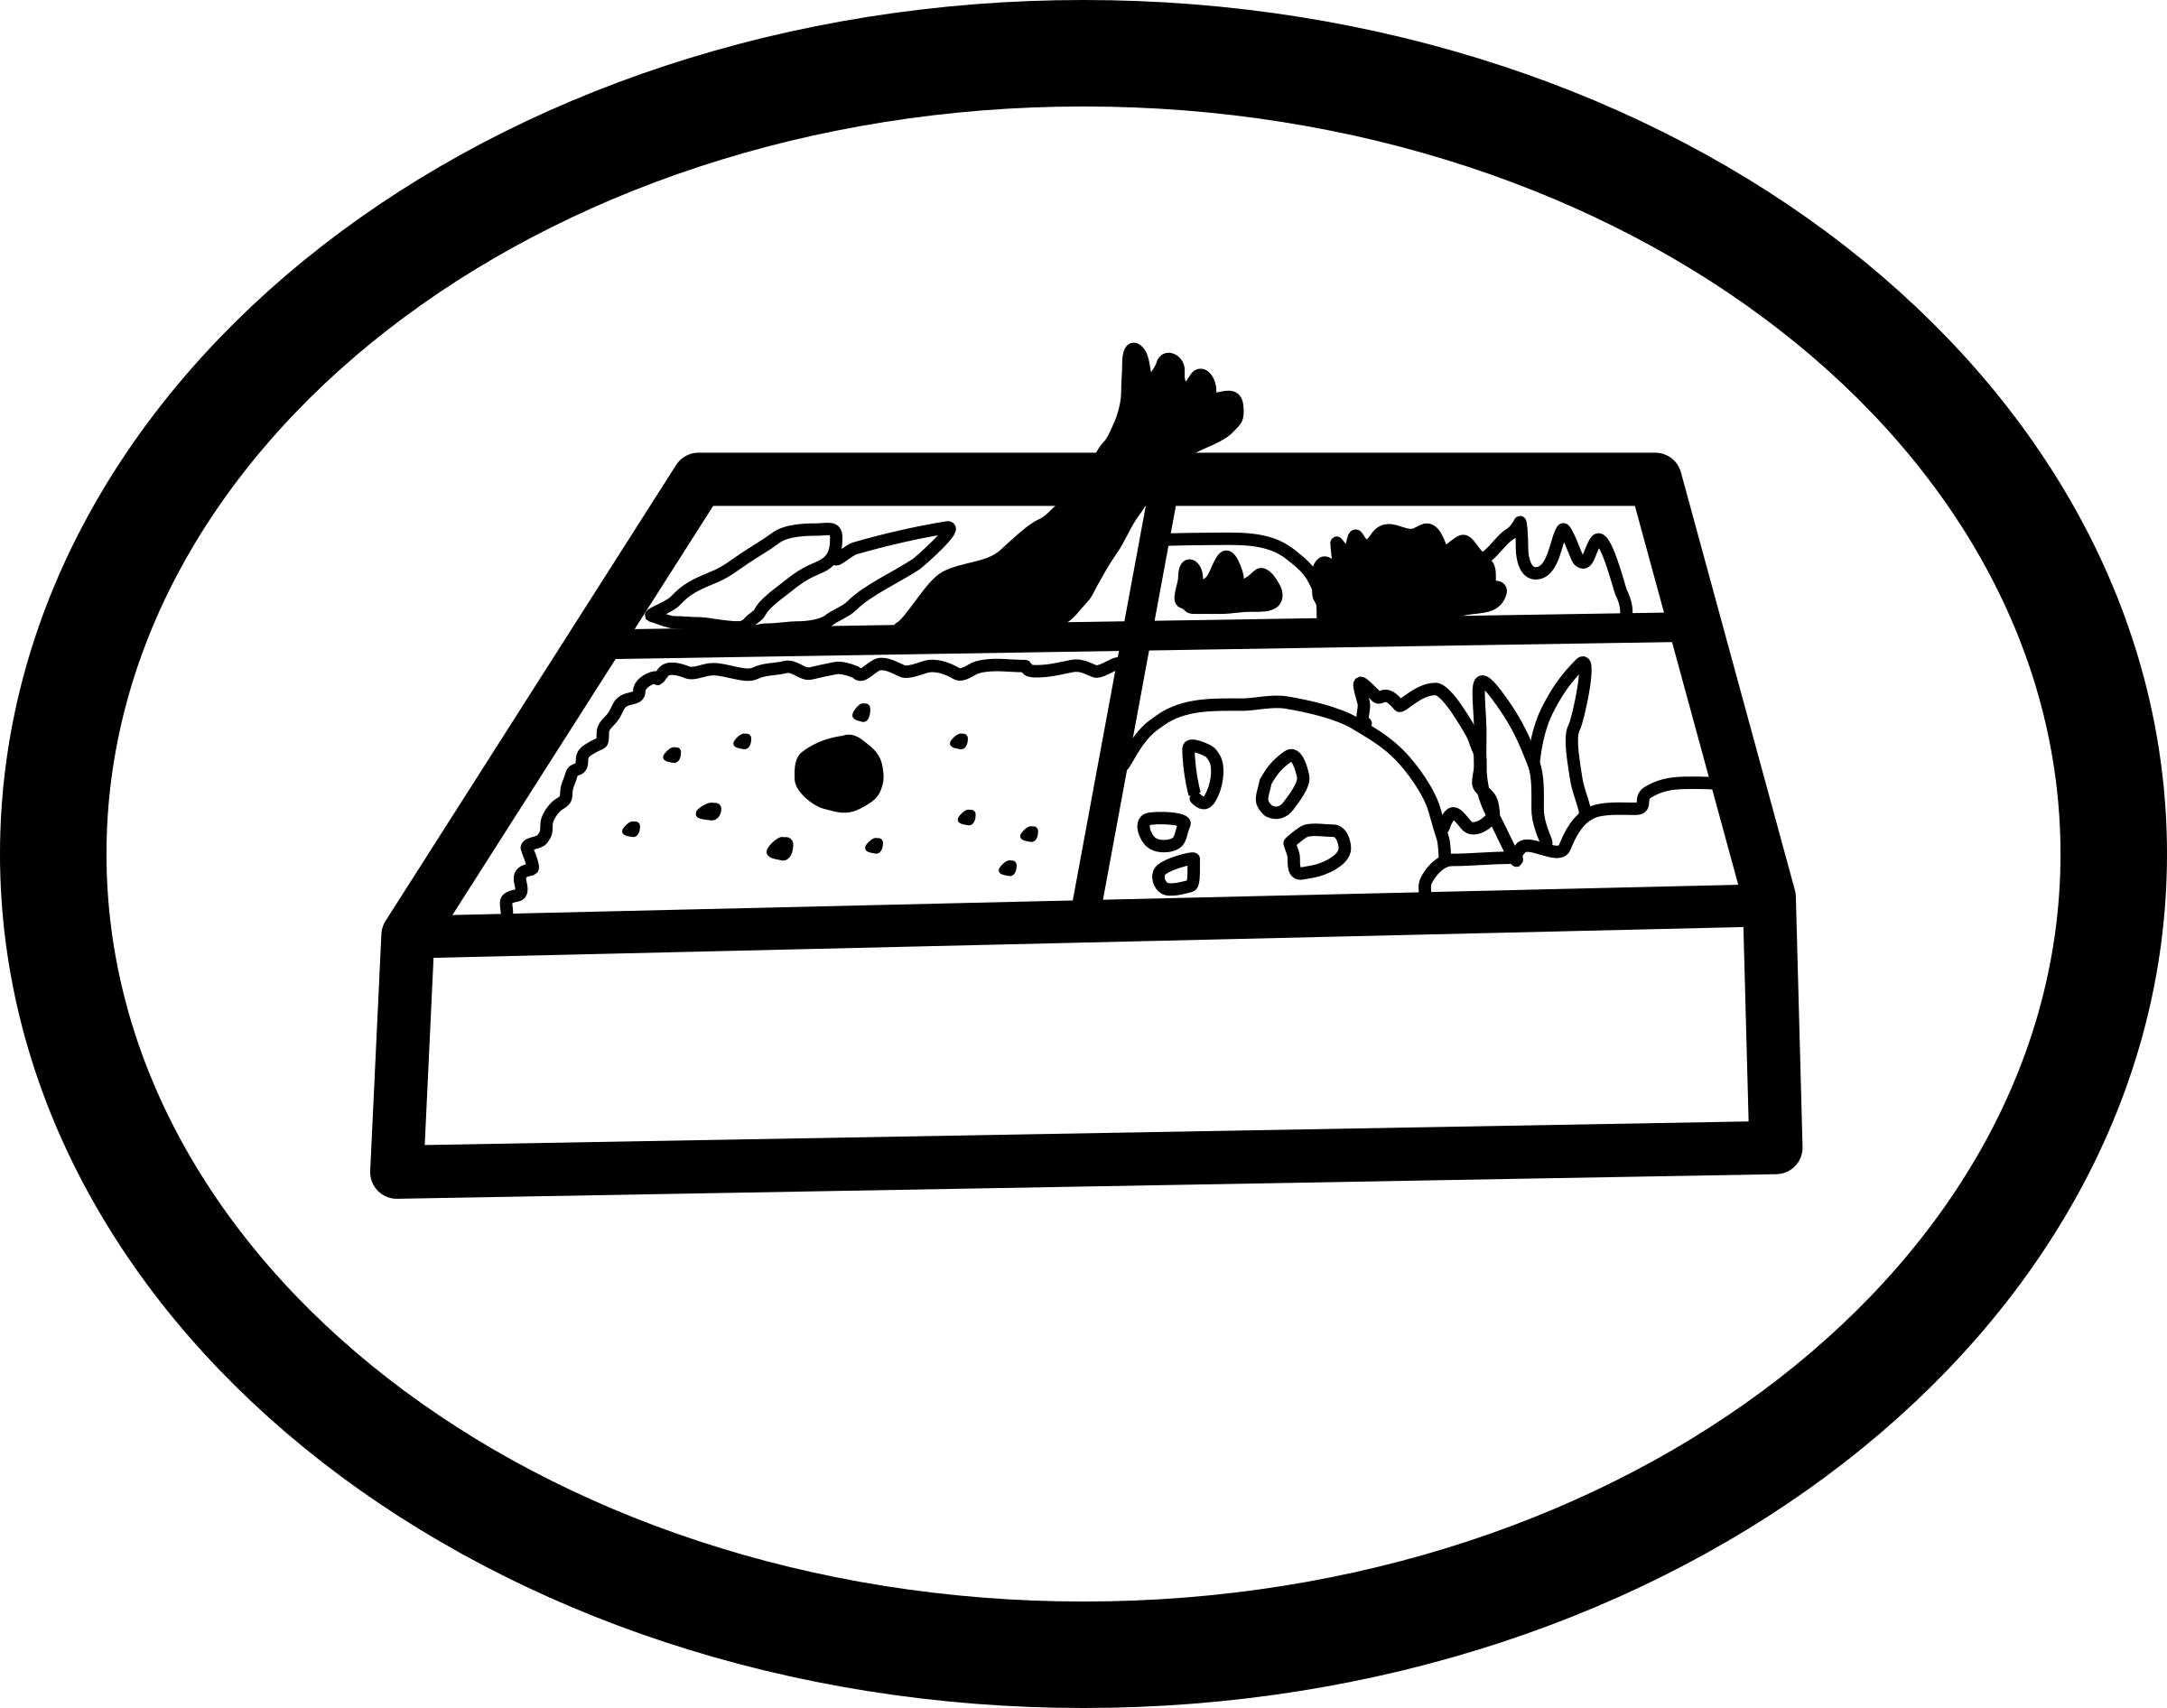 Lunch Clipart Lunch Kit Lunch Lunch Kit Transparent Free